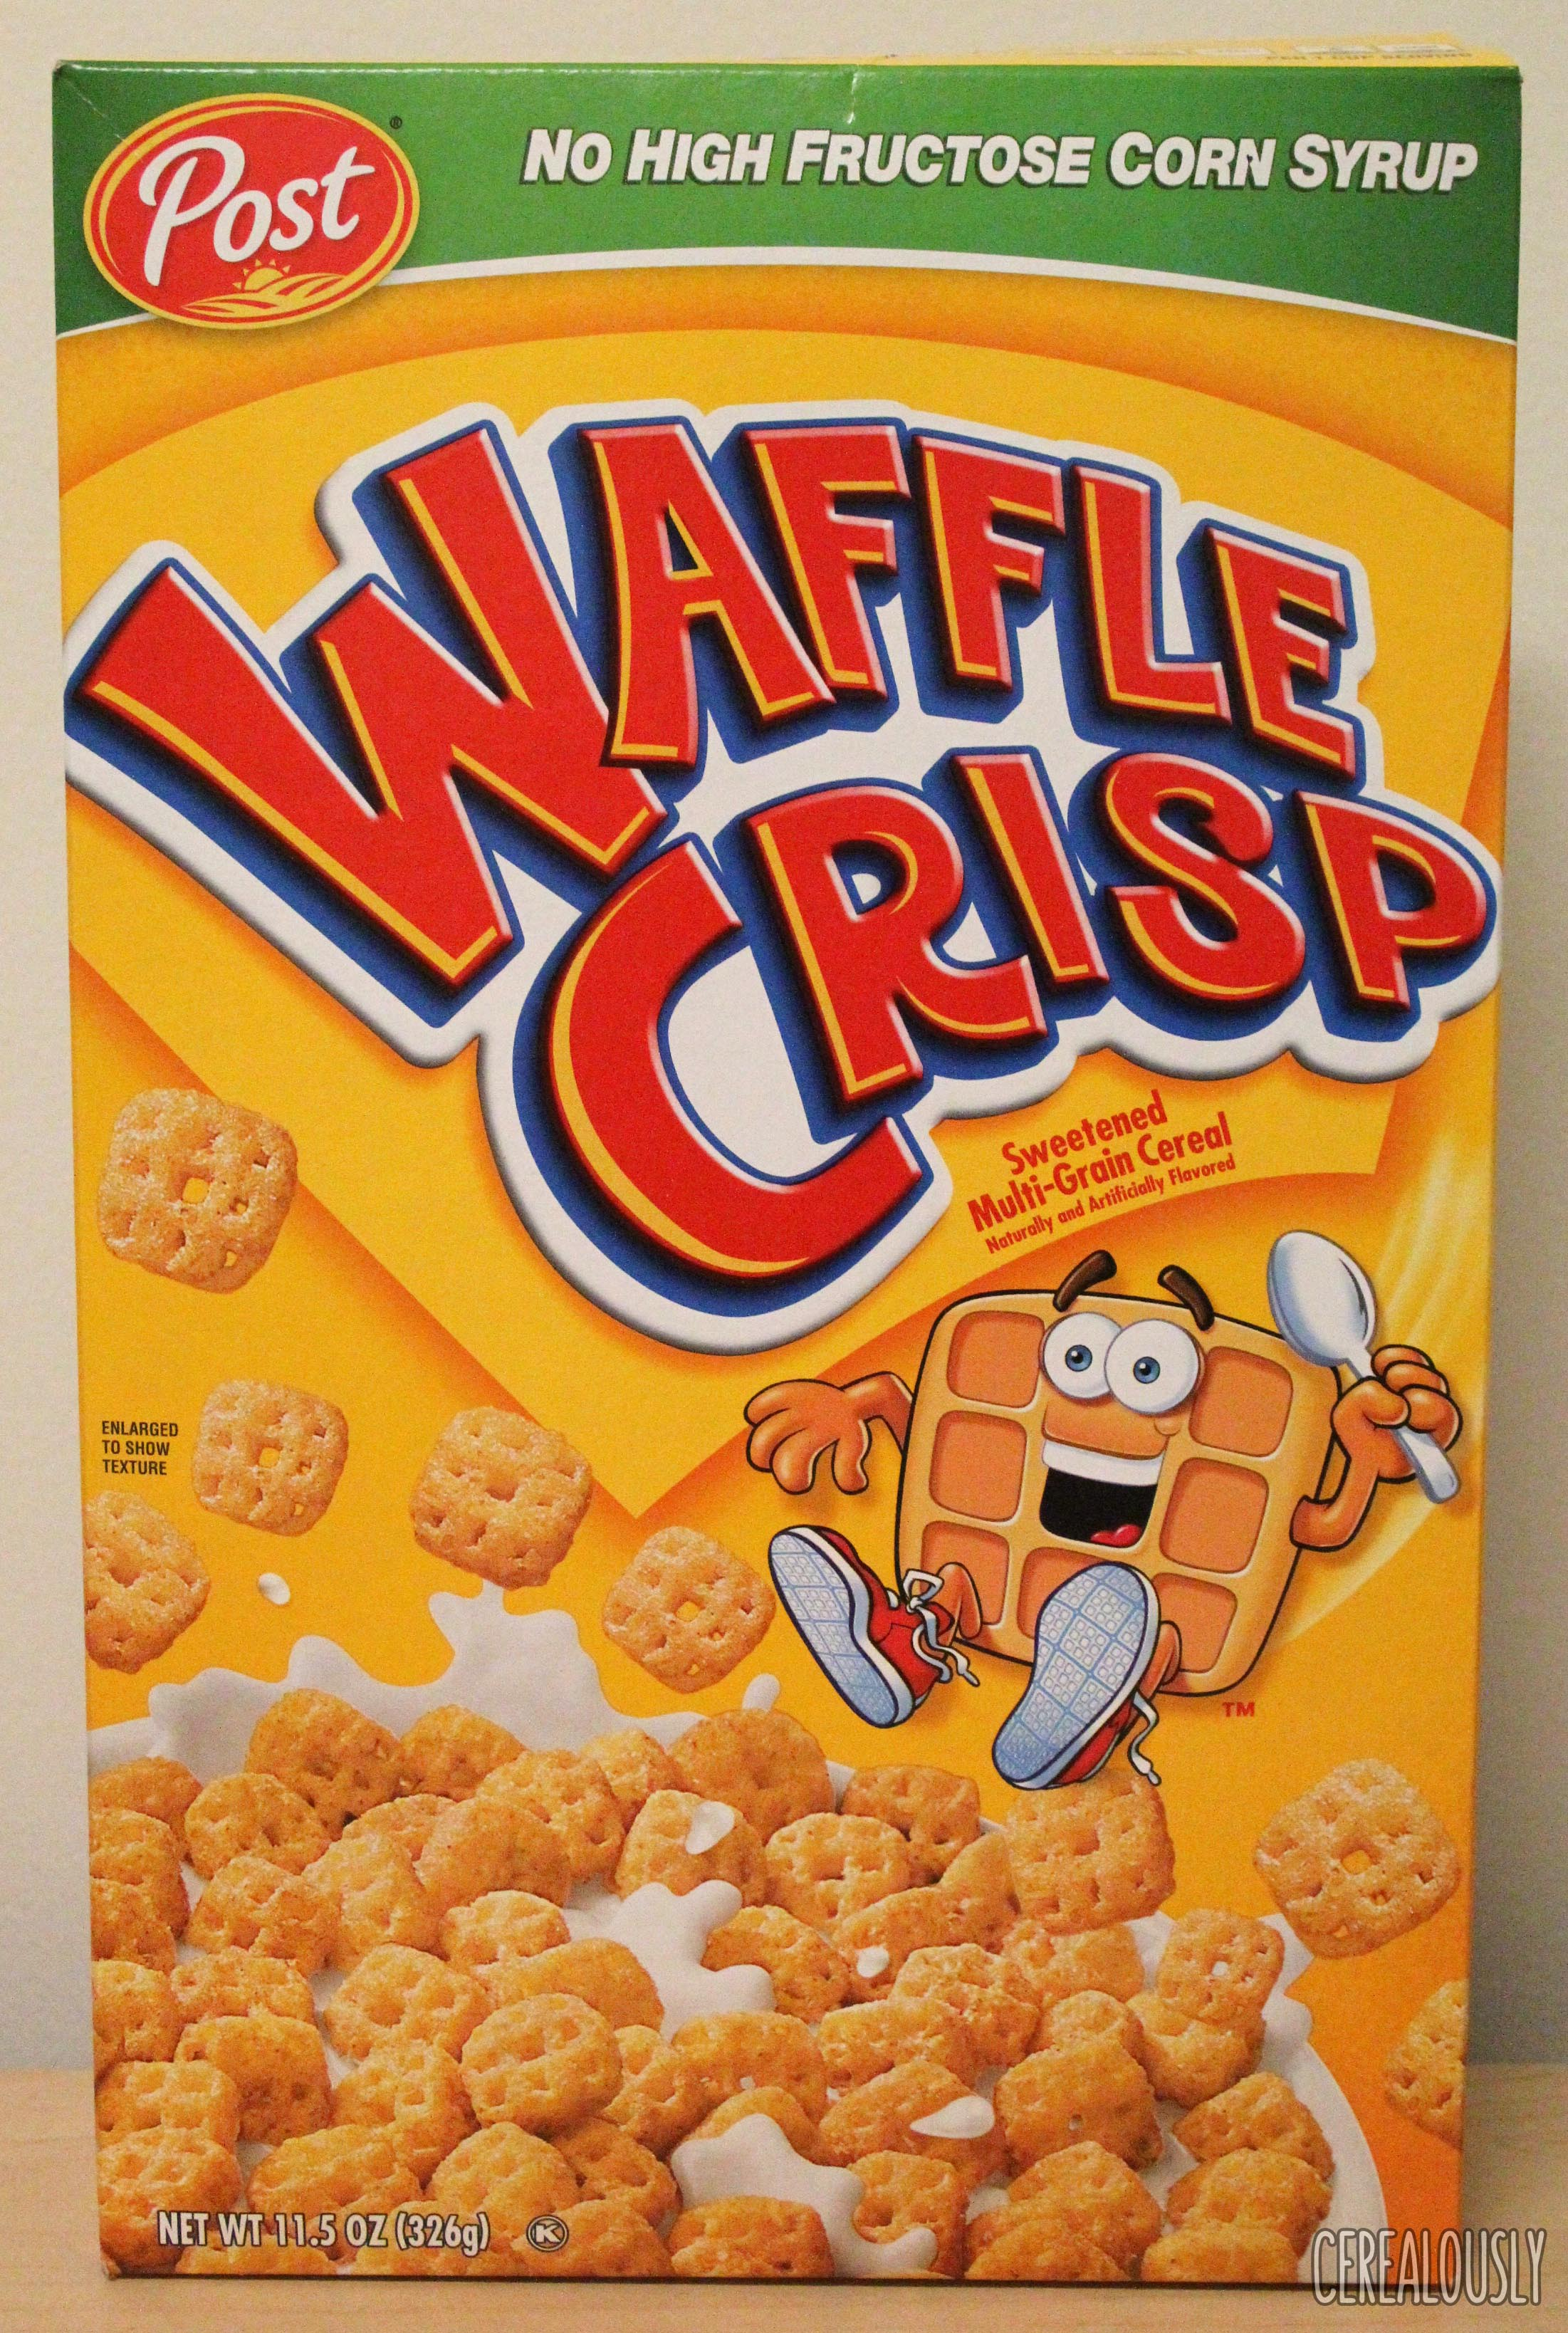 Classic Review: Waffle Crisp Cereal